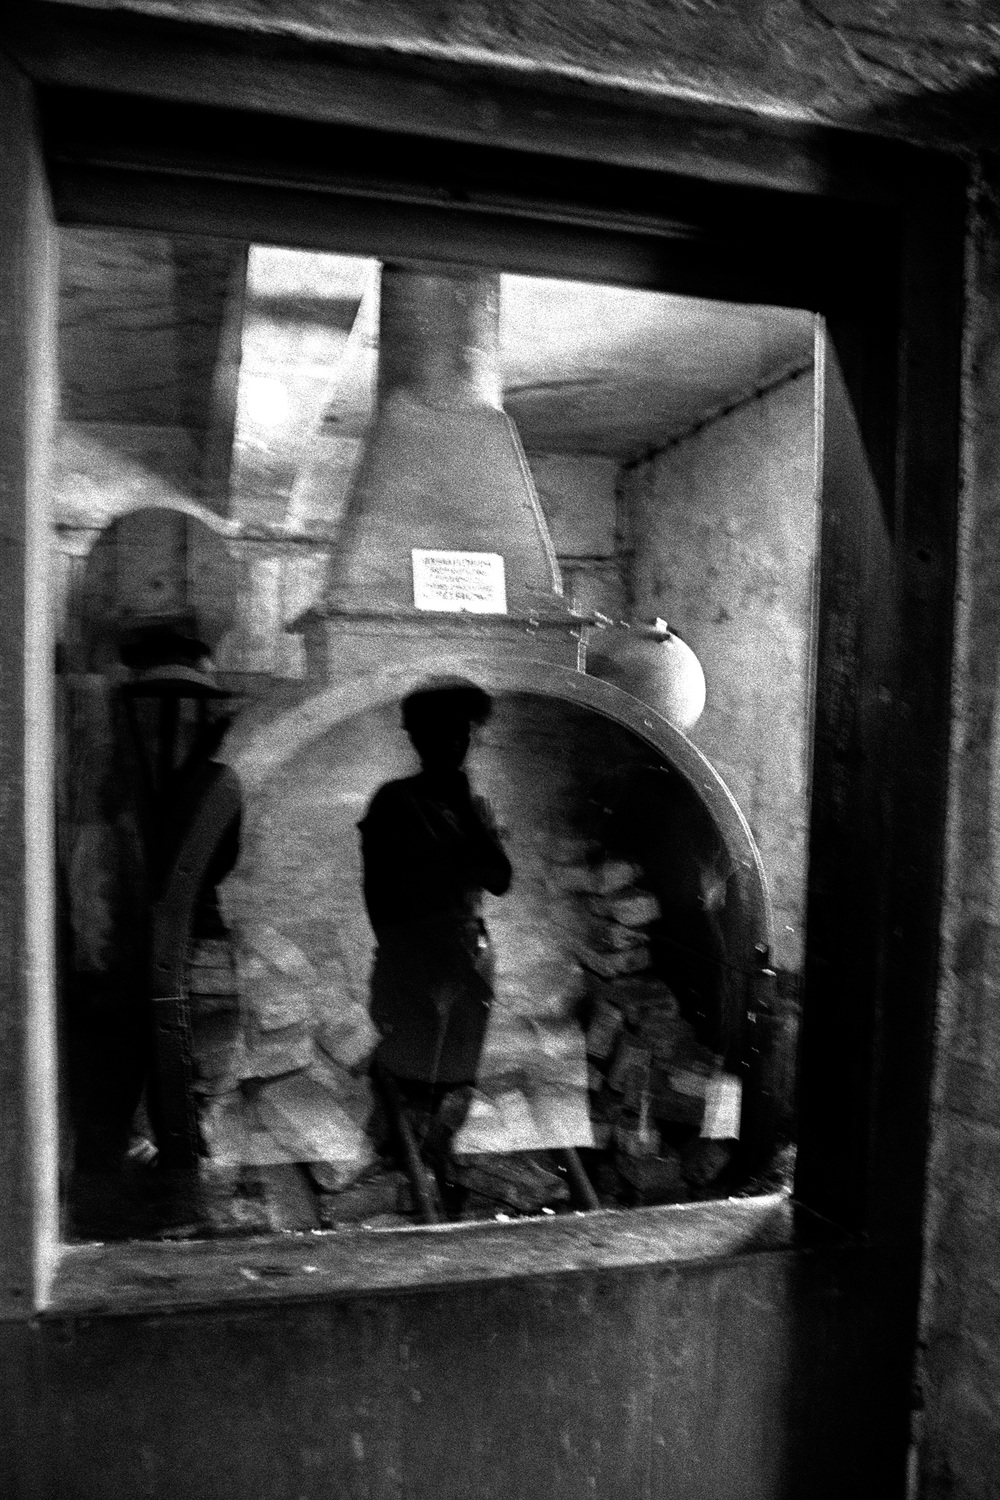 30-Reflection-of-Woman-Oven-Auschwitz-Poland.jpg